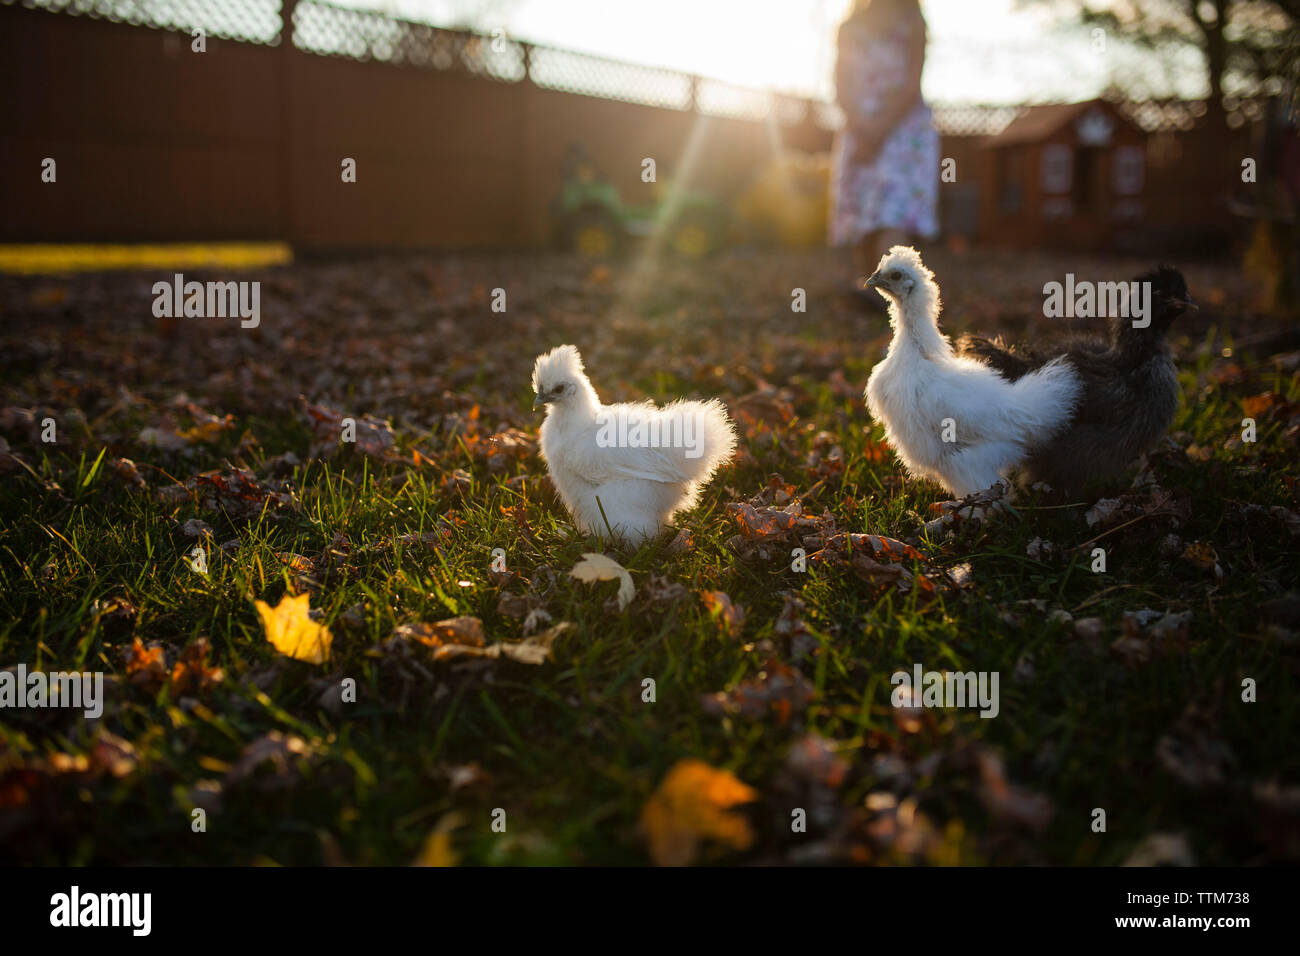 Baby chickens in farm during sunset - Stock Image